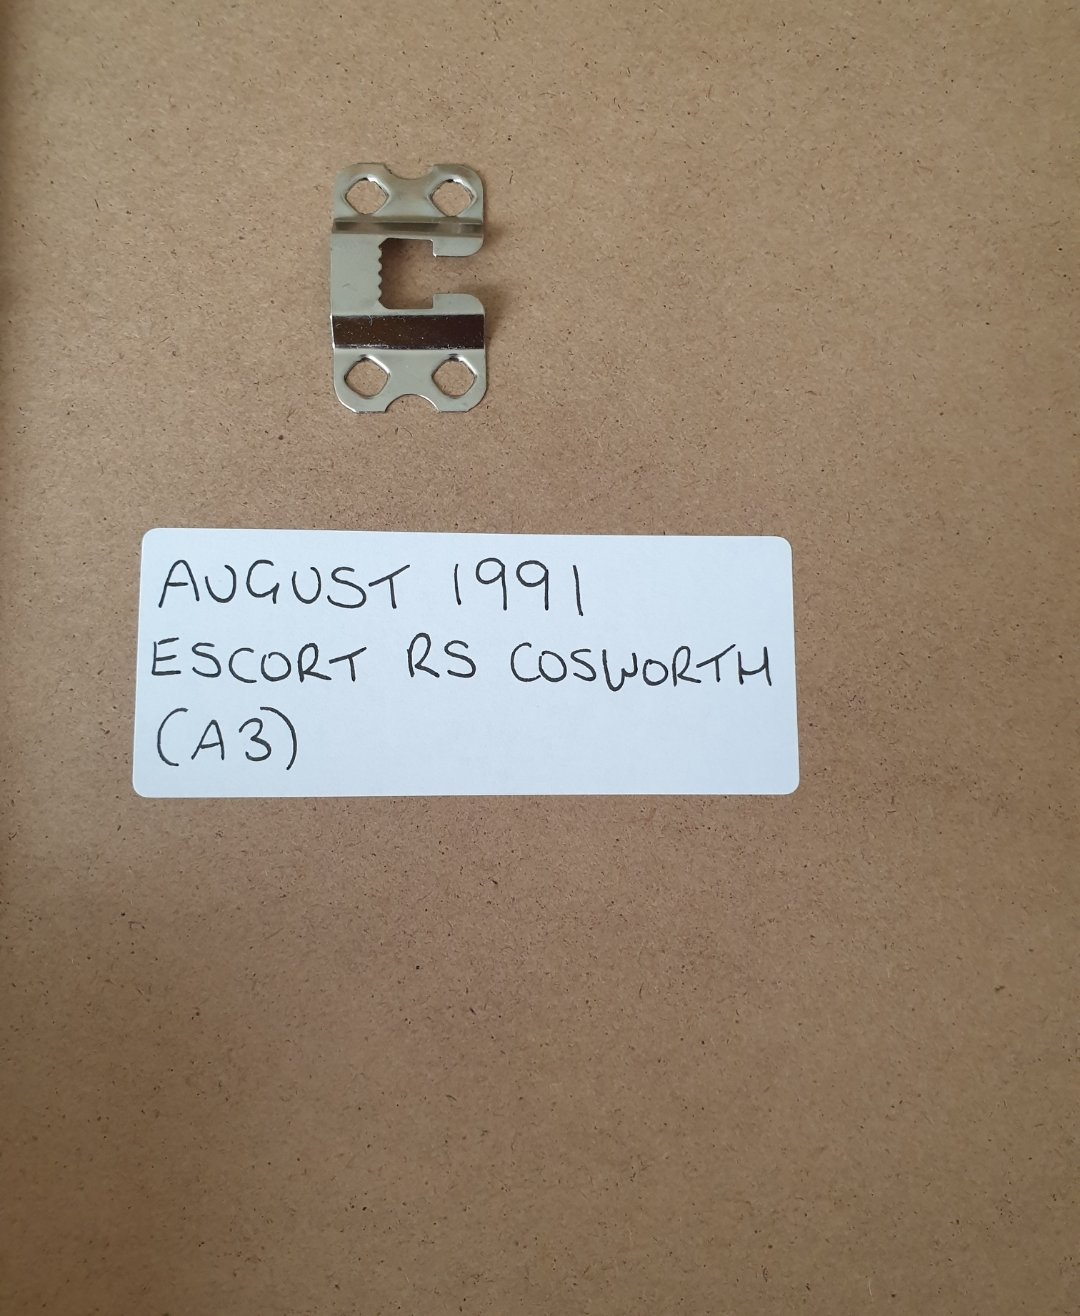 1991 Original Escort RS Cosworth Advert For Sale (picture 2 of 2)